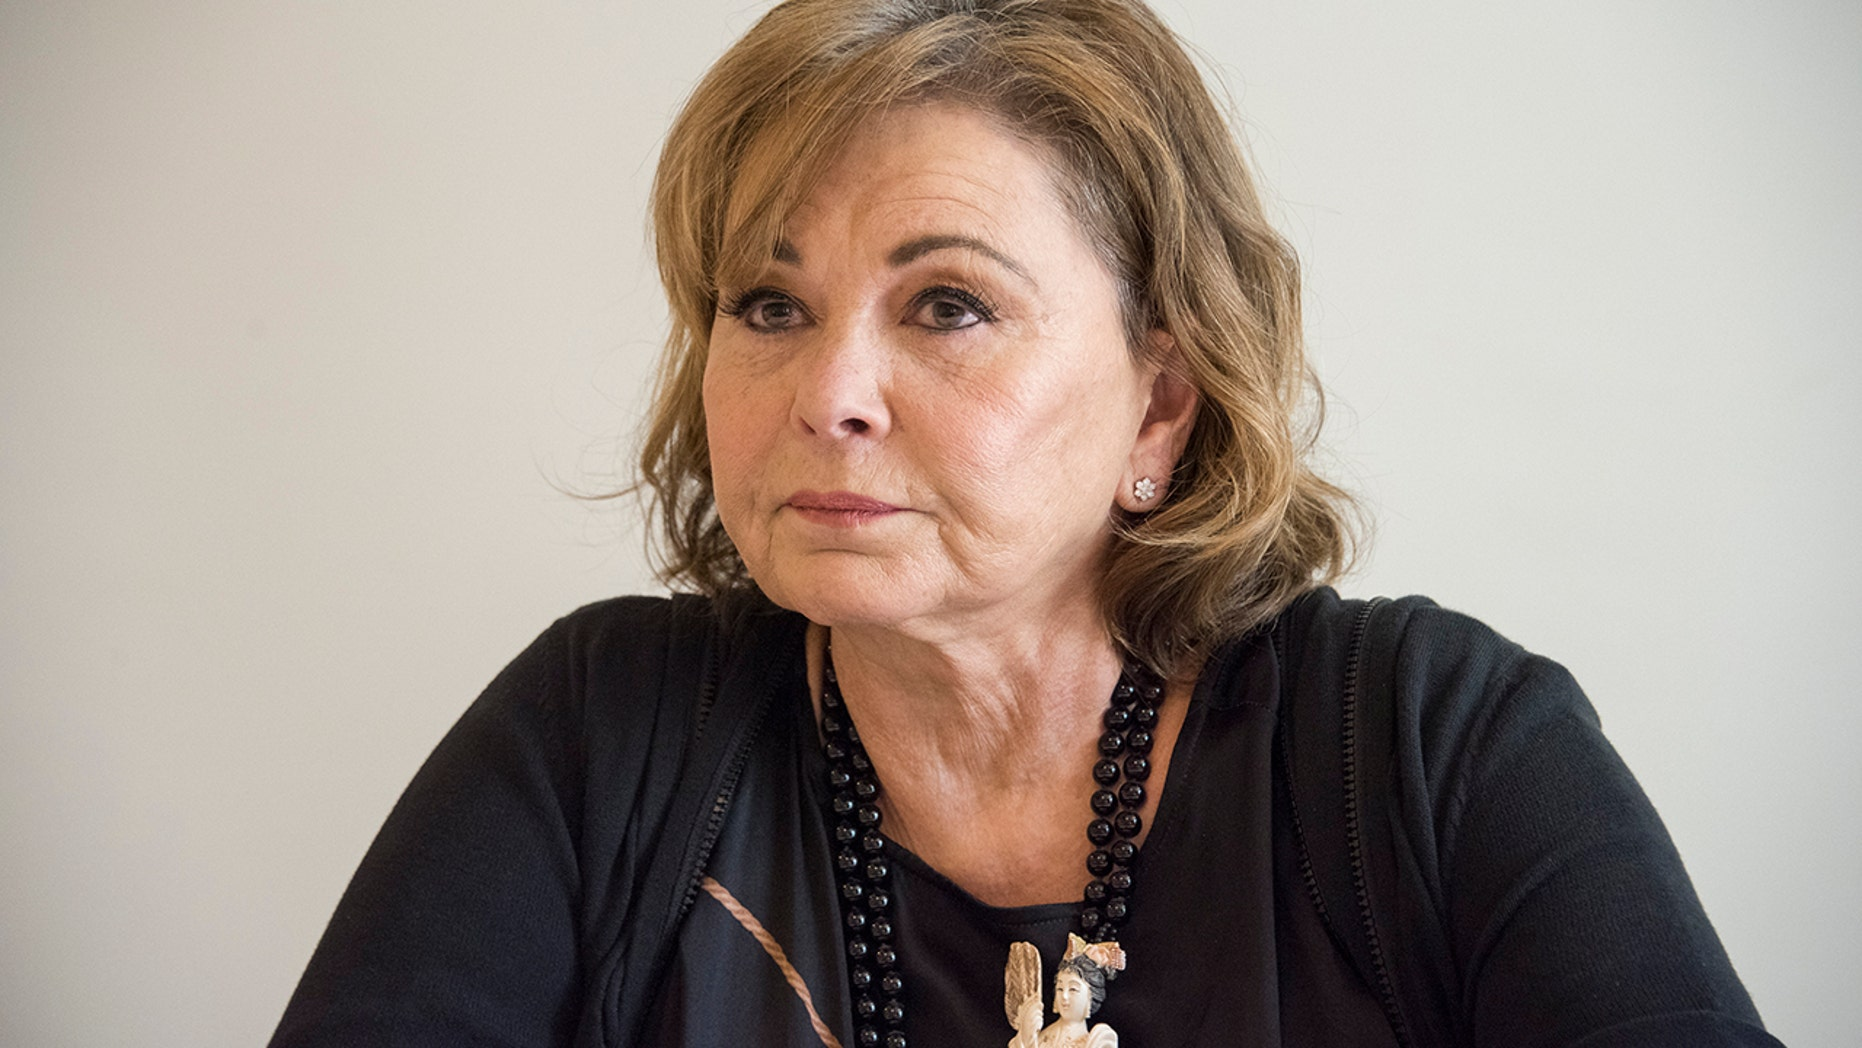 """Roseanne Barr at the """"Roseanne"""" Press Conference at the Four Seasons Hotel on March 23, 2018 in Beverly Hills, California."""